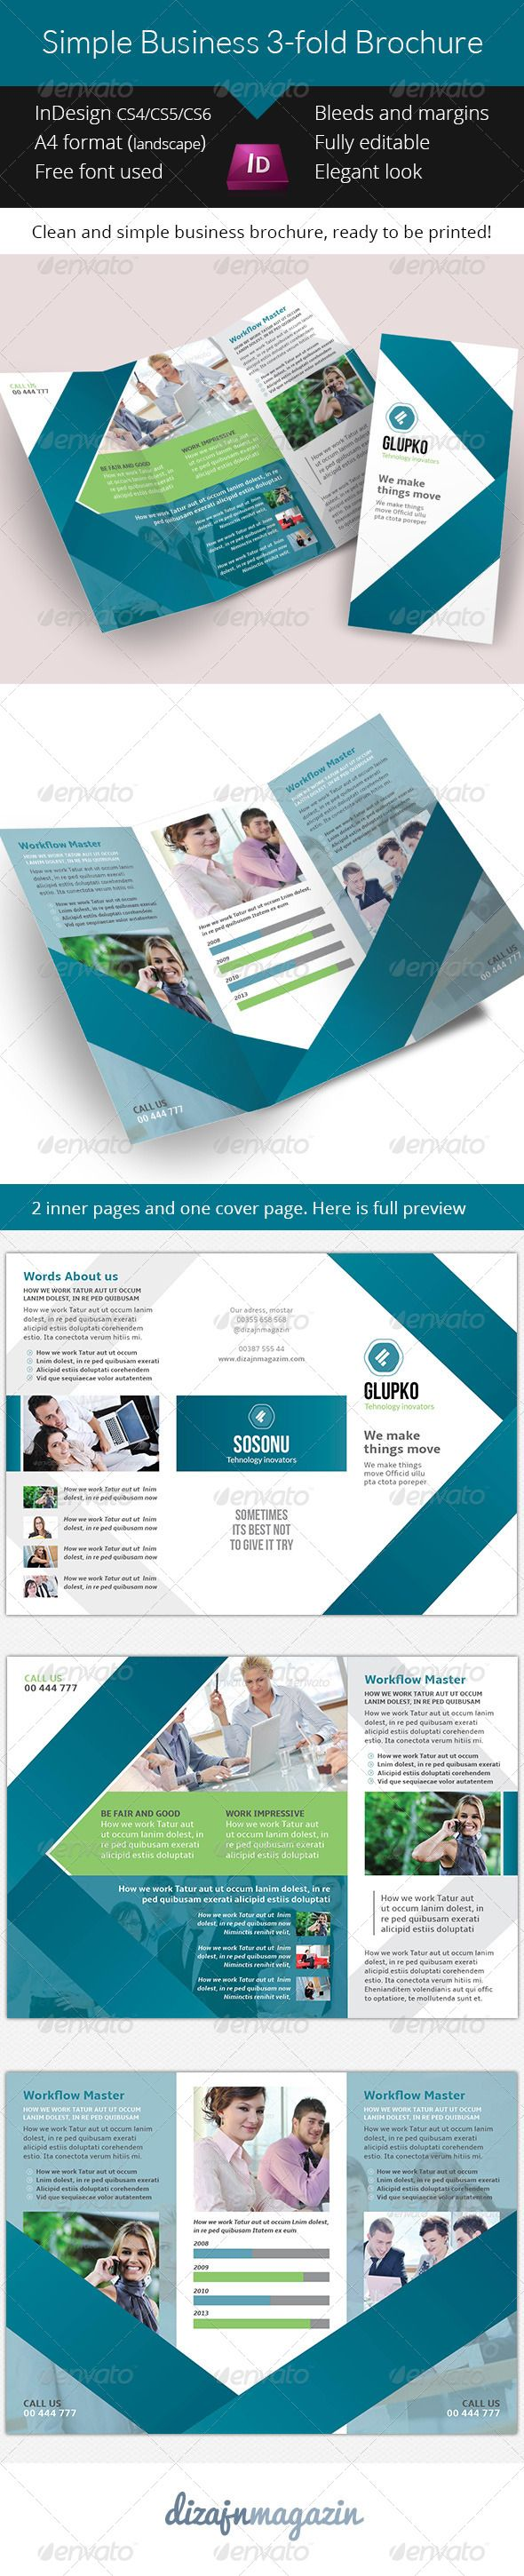 17 best images about print templates on pinterest for Indesign free brochure templates